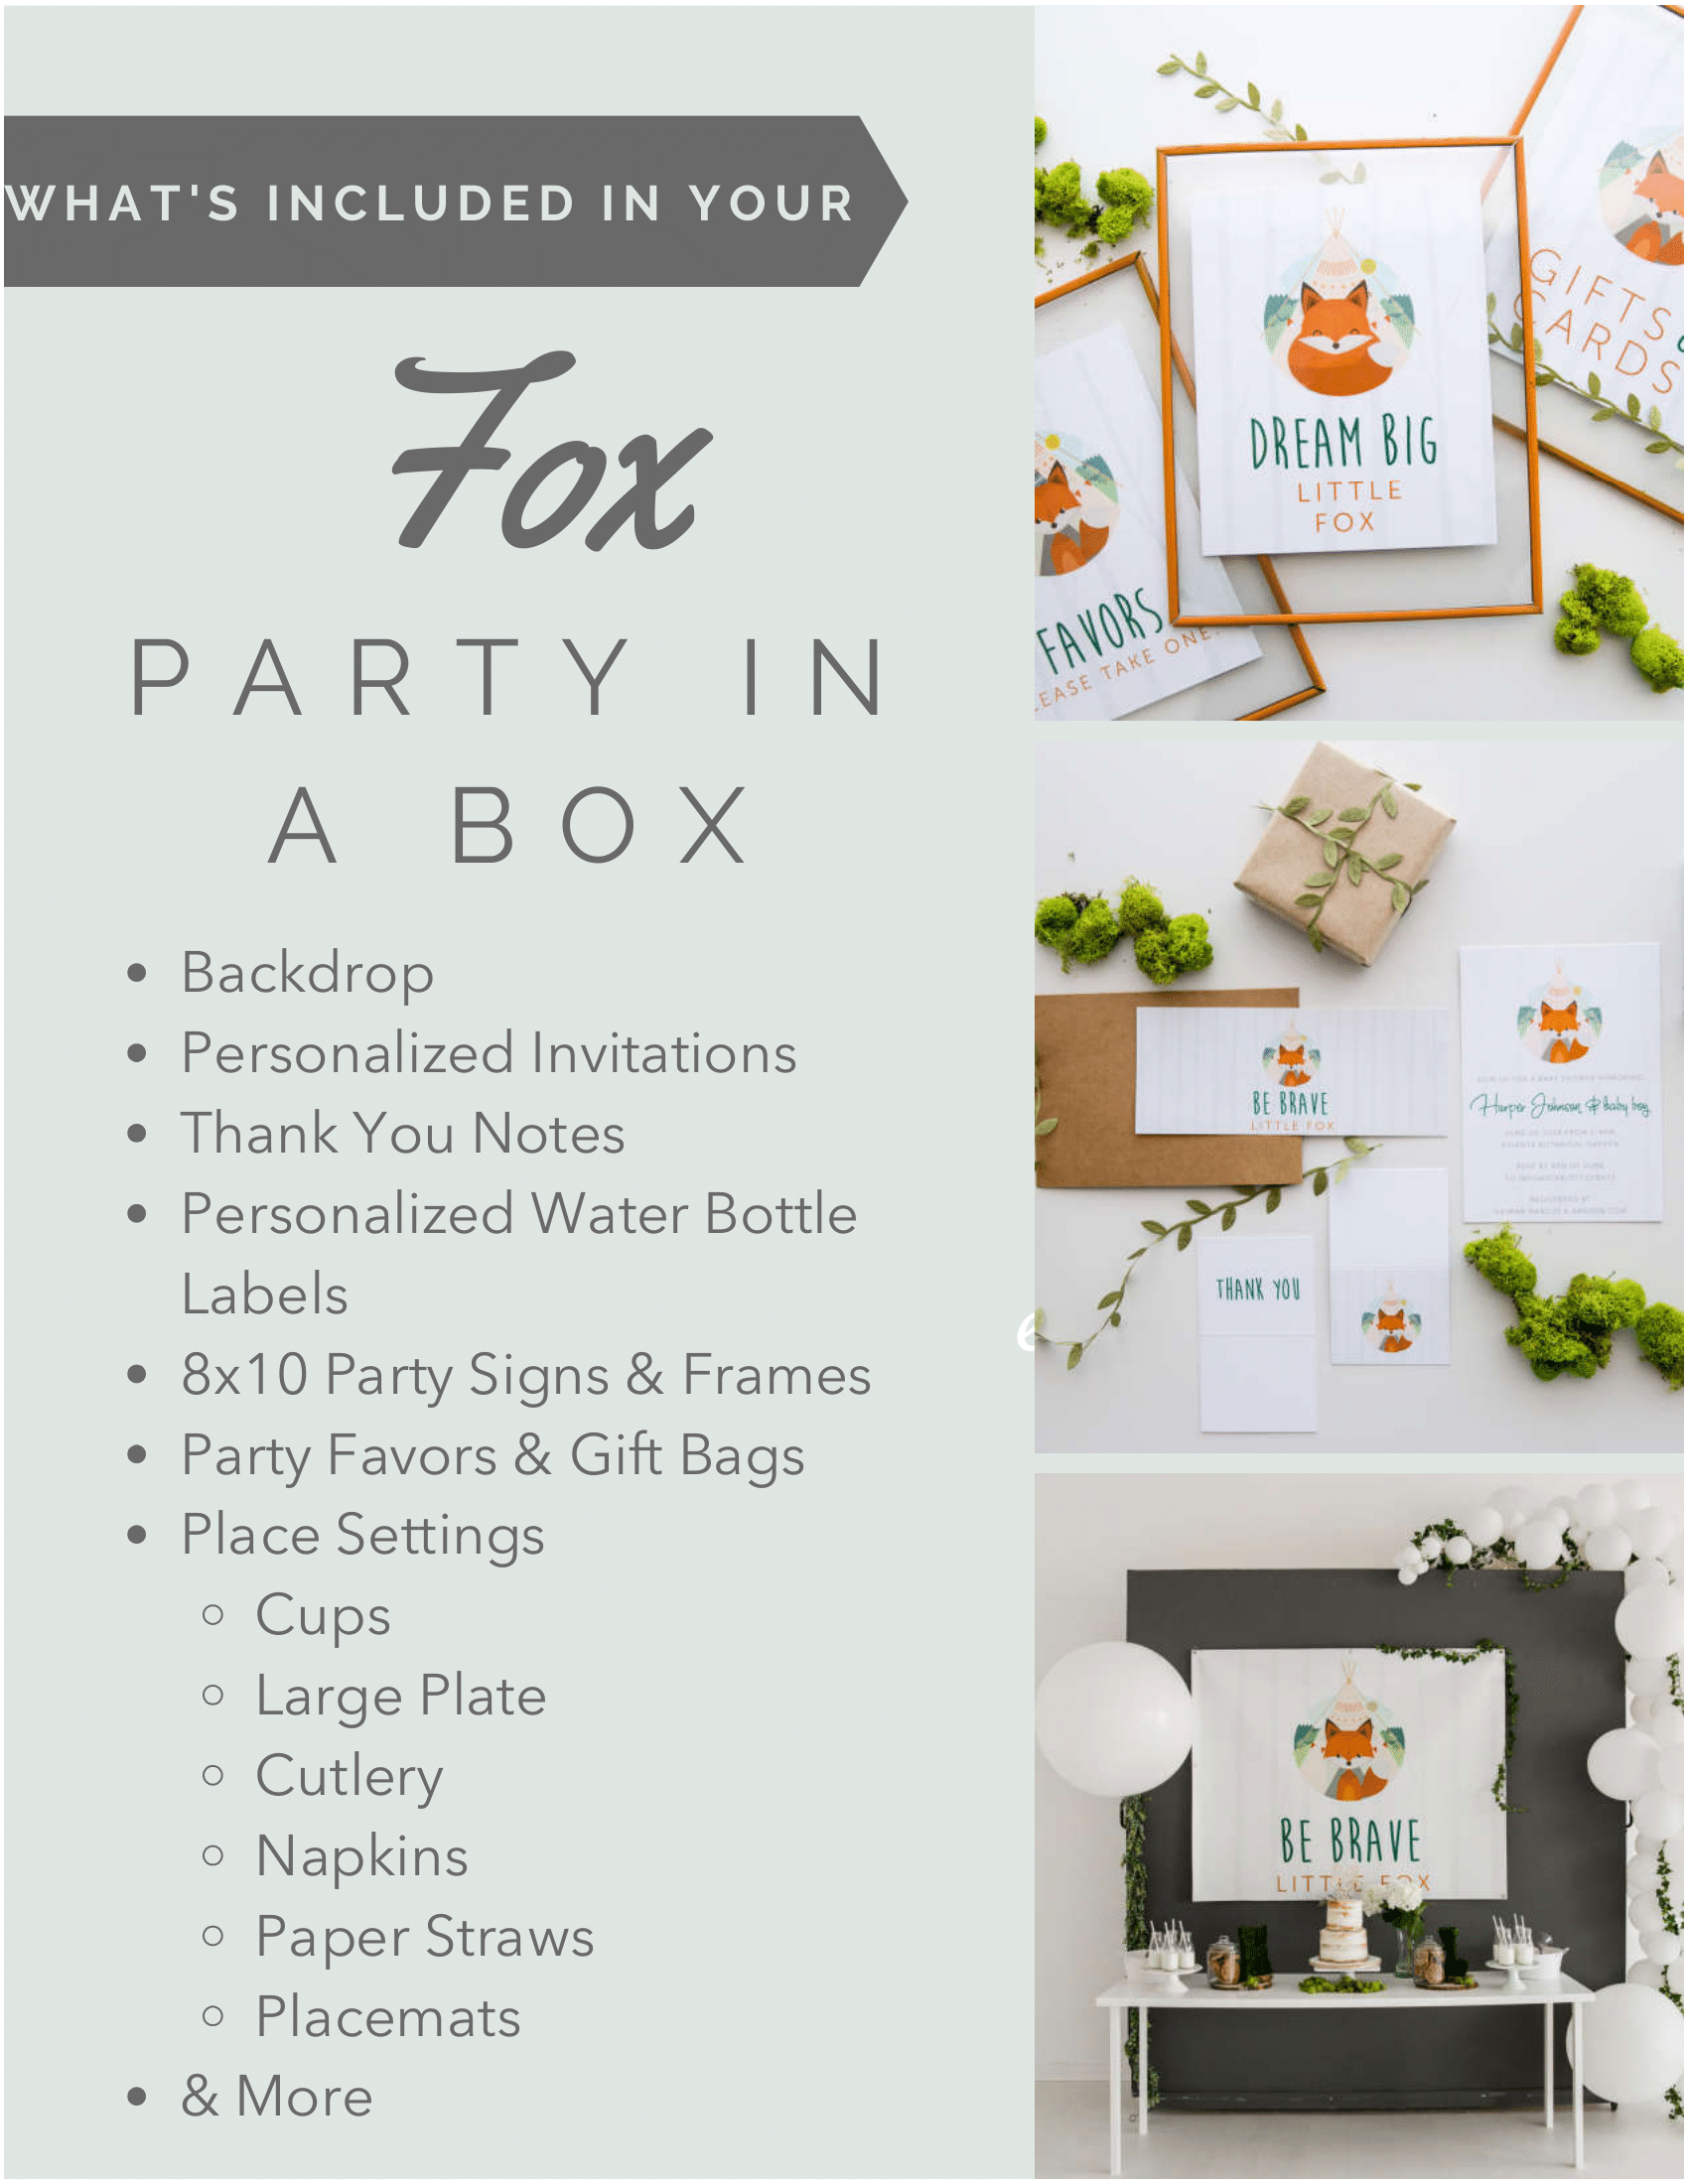 Whats Included - Fox Party